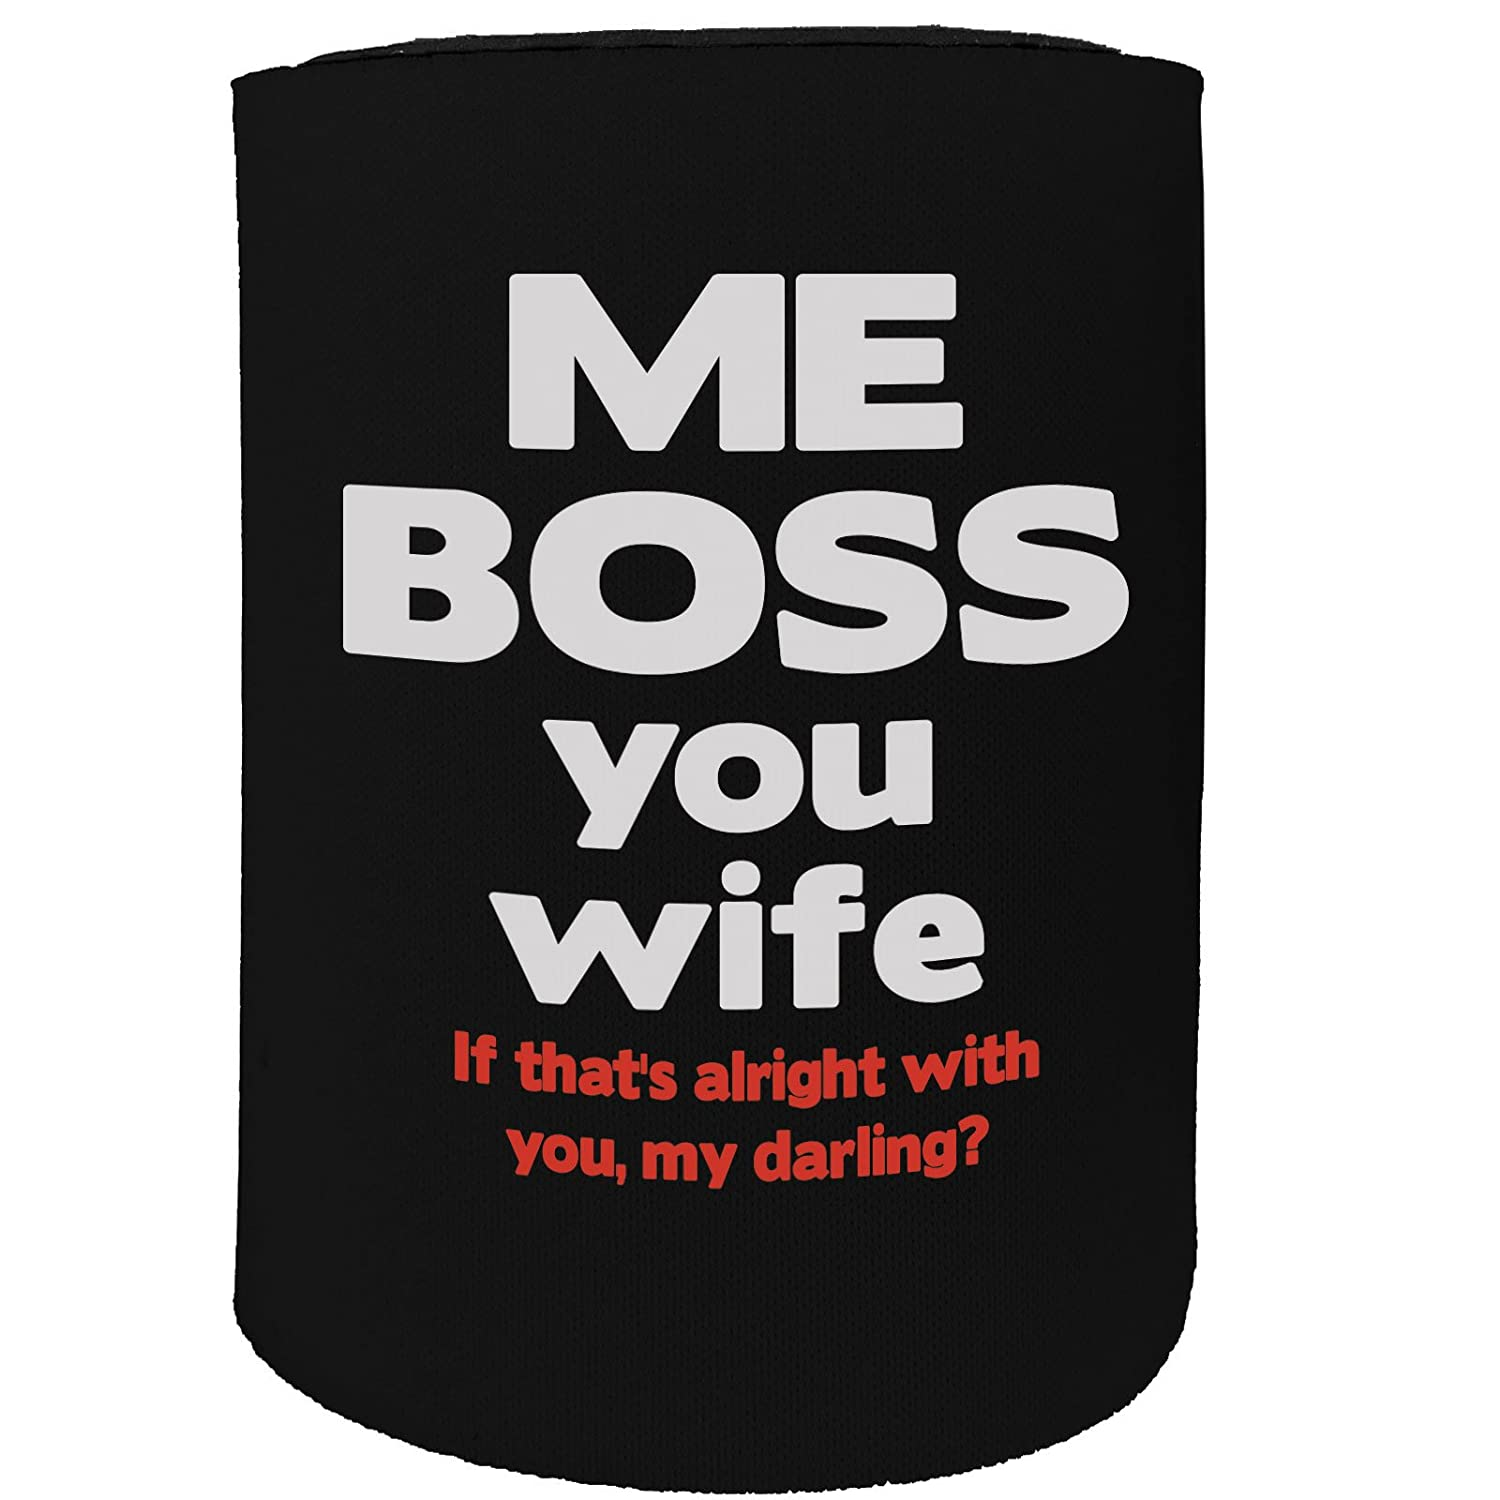 123t Stubby Holder - Me Boss You Wife - Funny Novelty Birthday Gift Joke Beer Can Bottle Coolie Koozie Stubbie